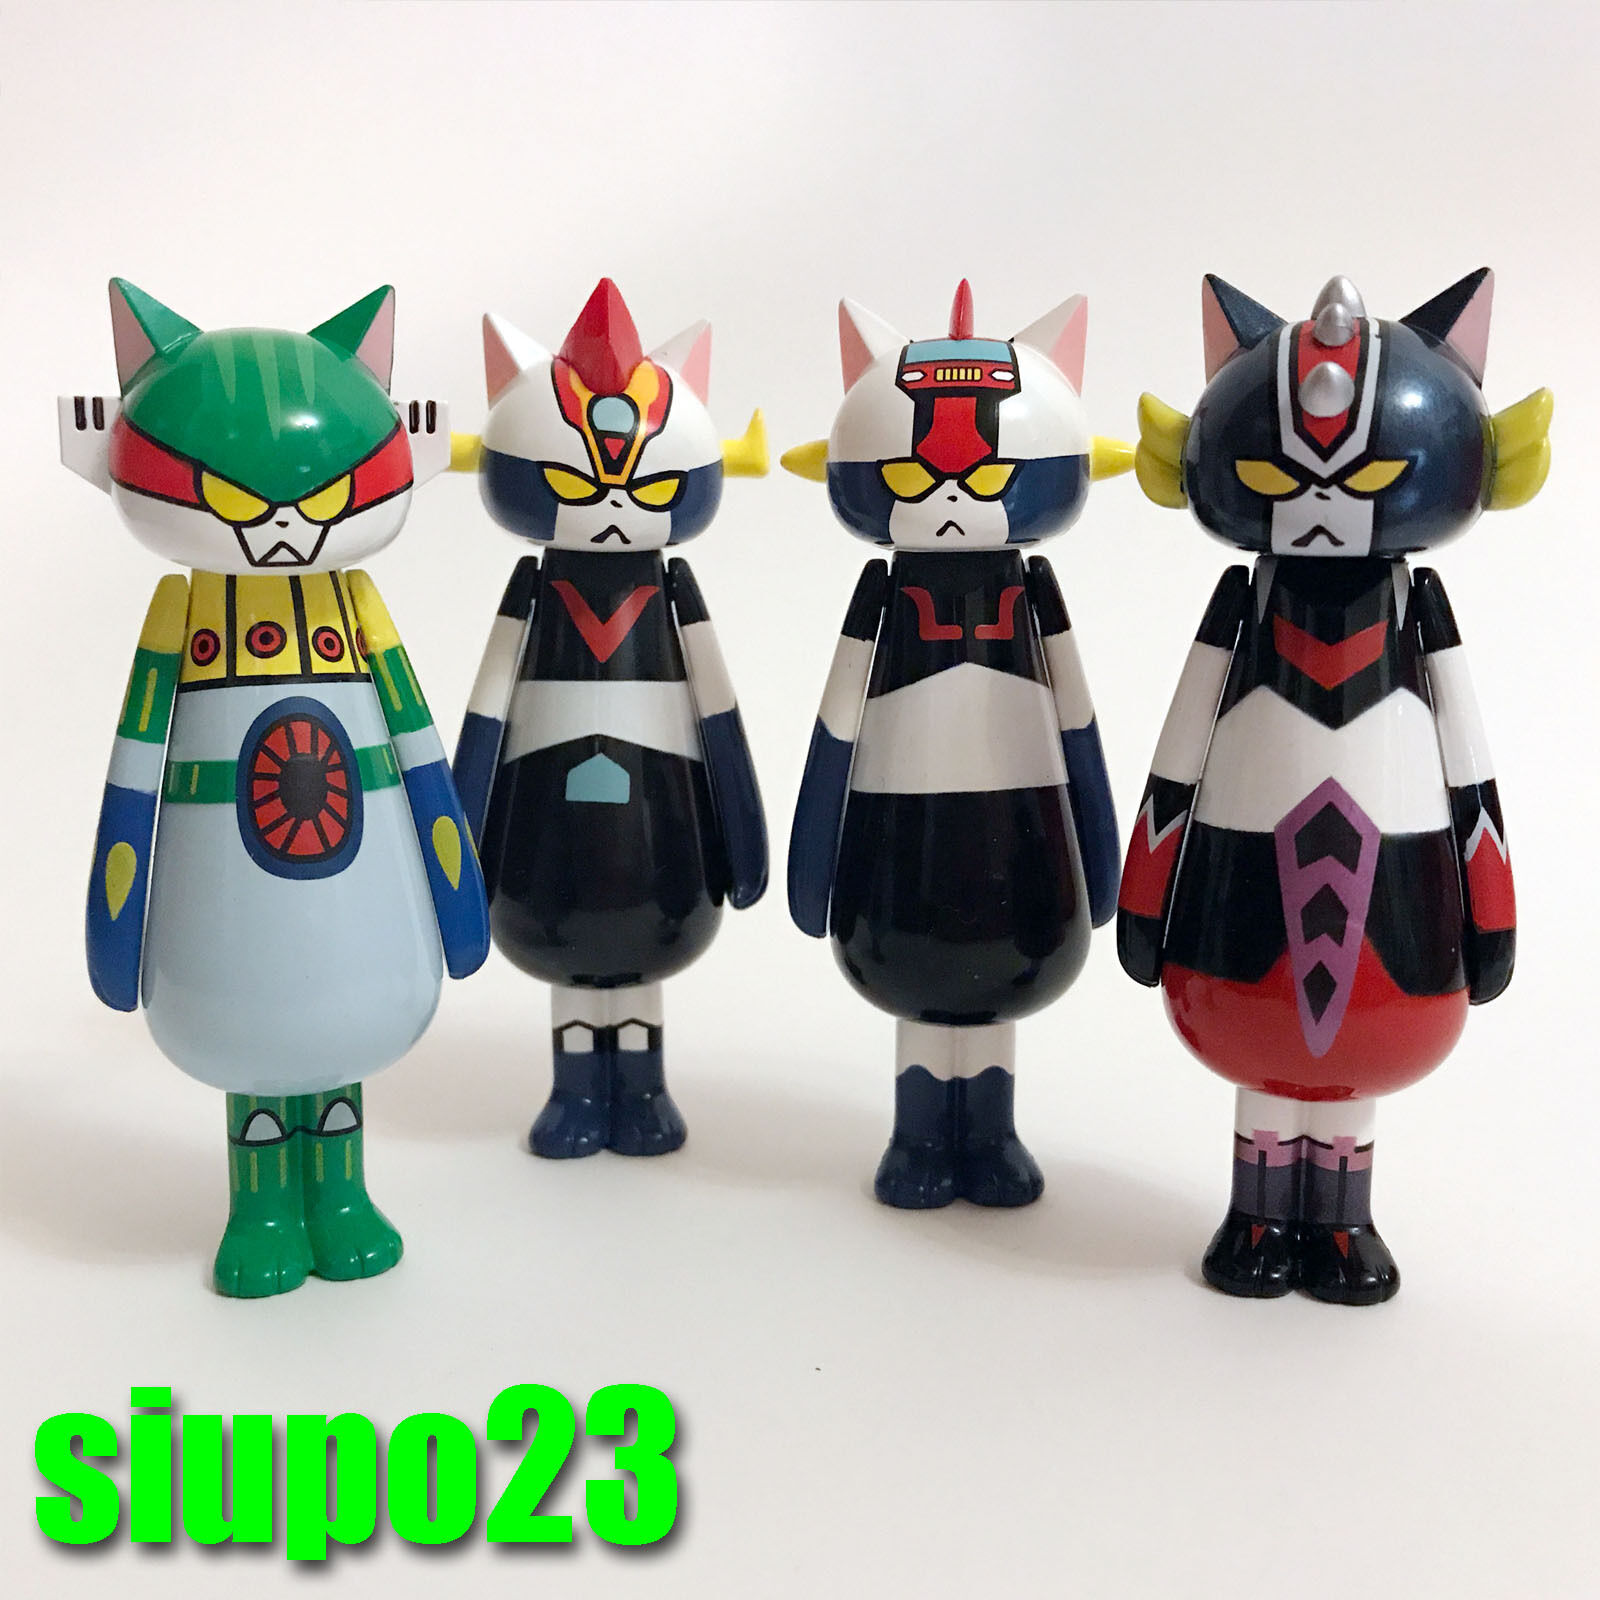 Action Action Action Toys Nya Nya Nyas  Go Nagai Mini Figure with Secret Full set 10pcs aa6761